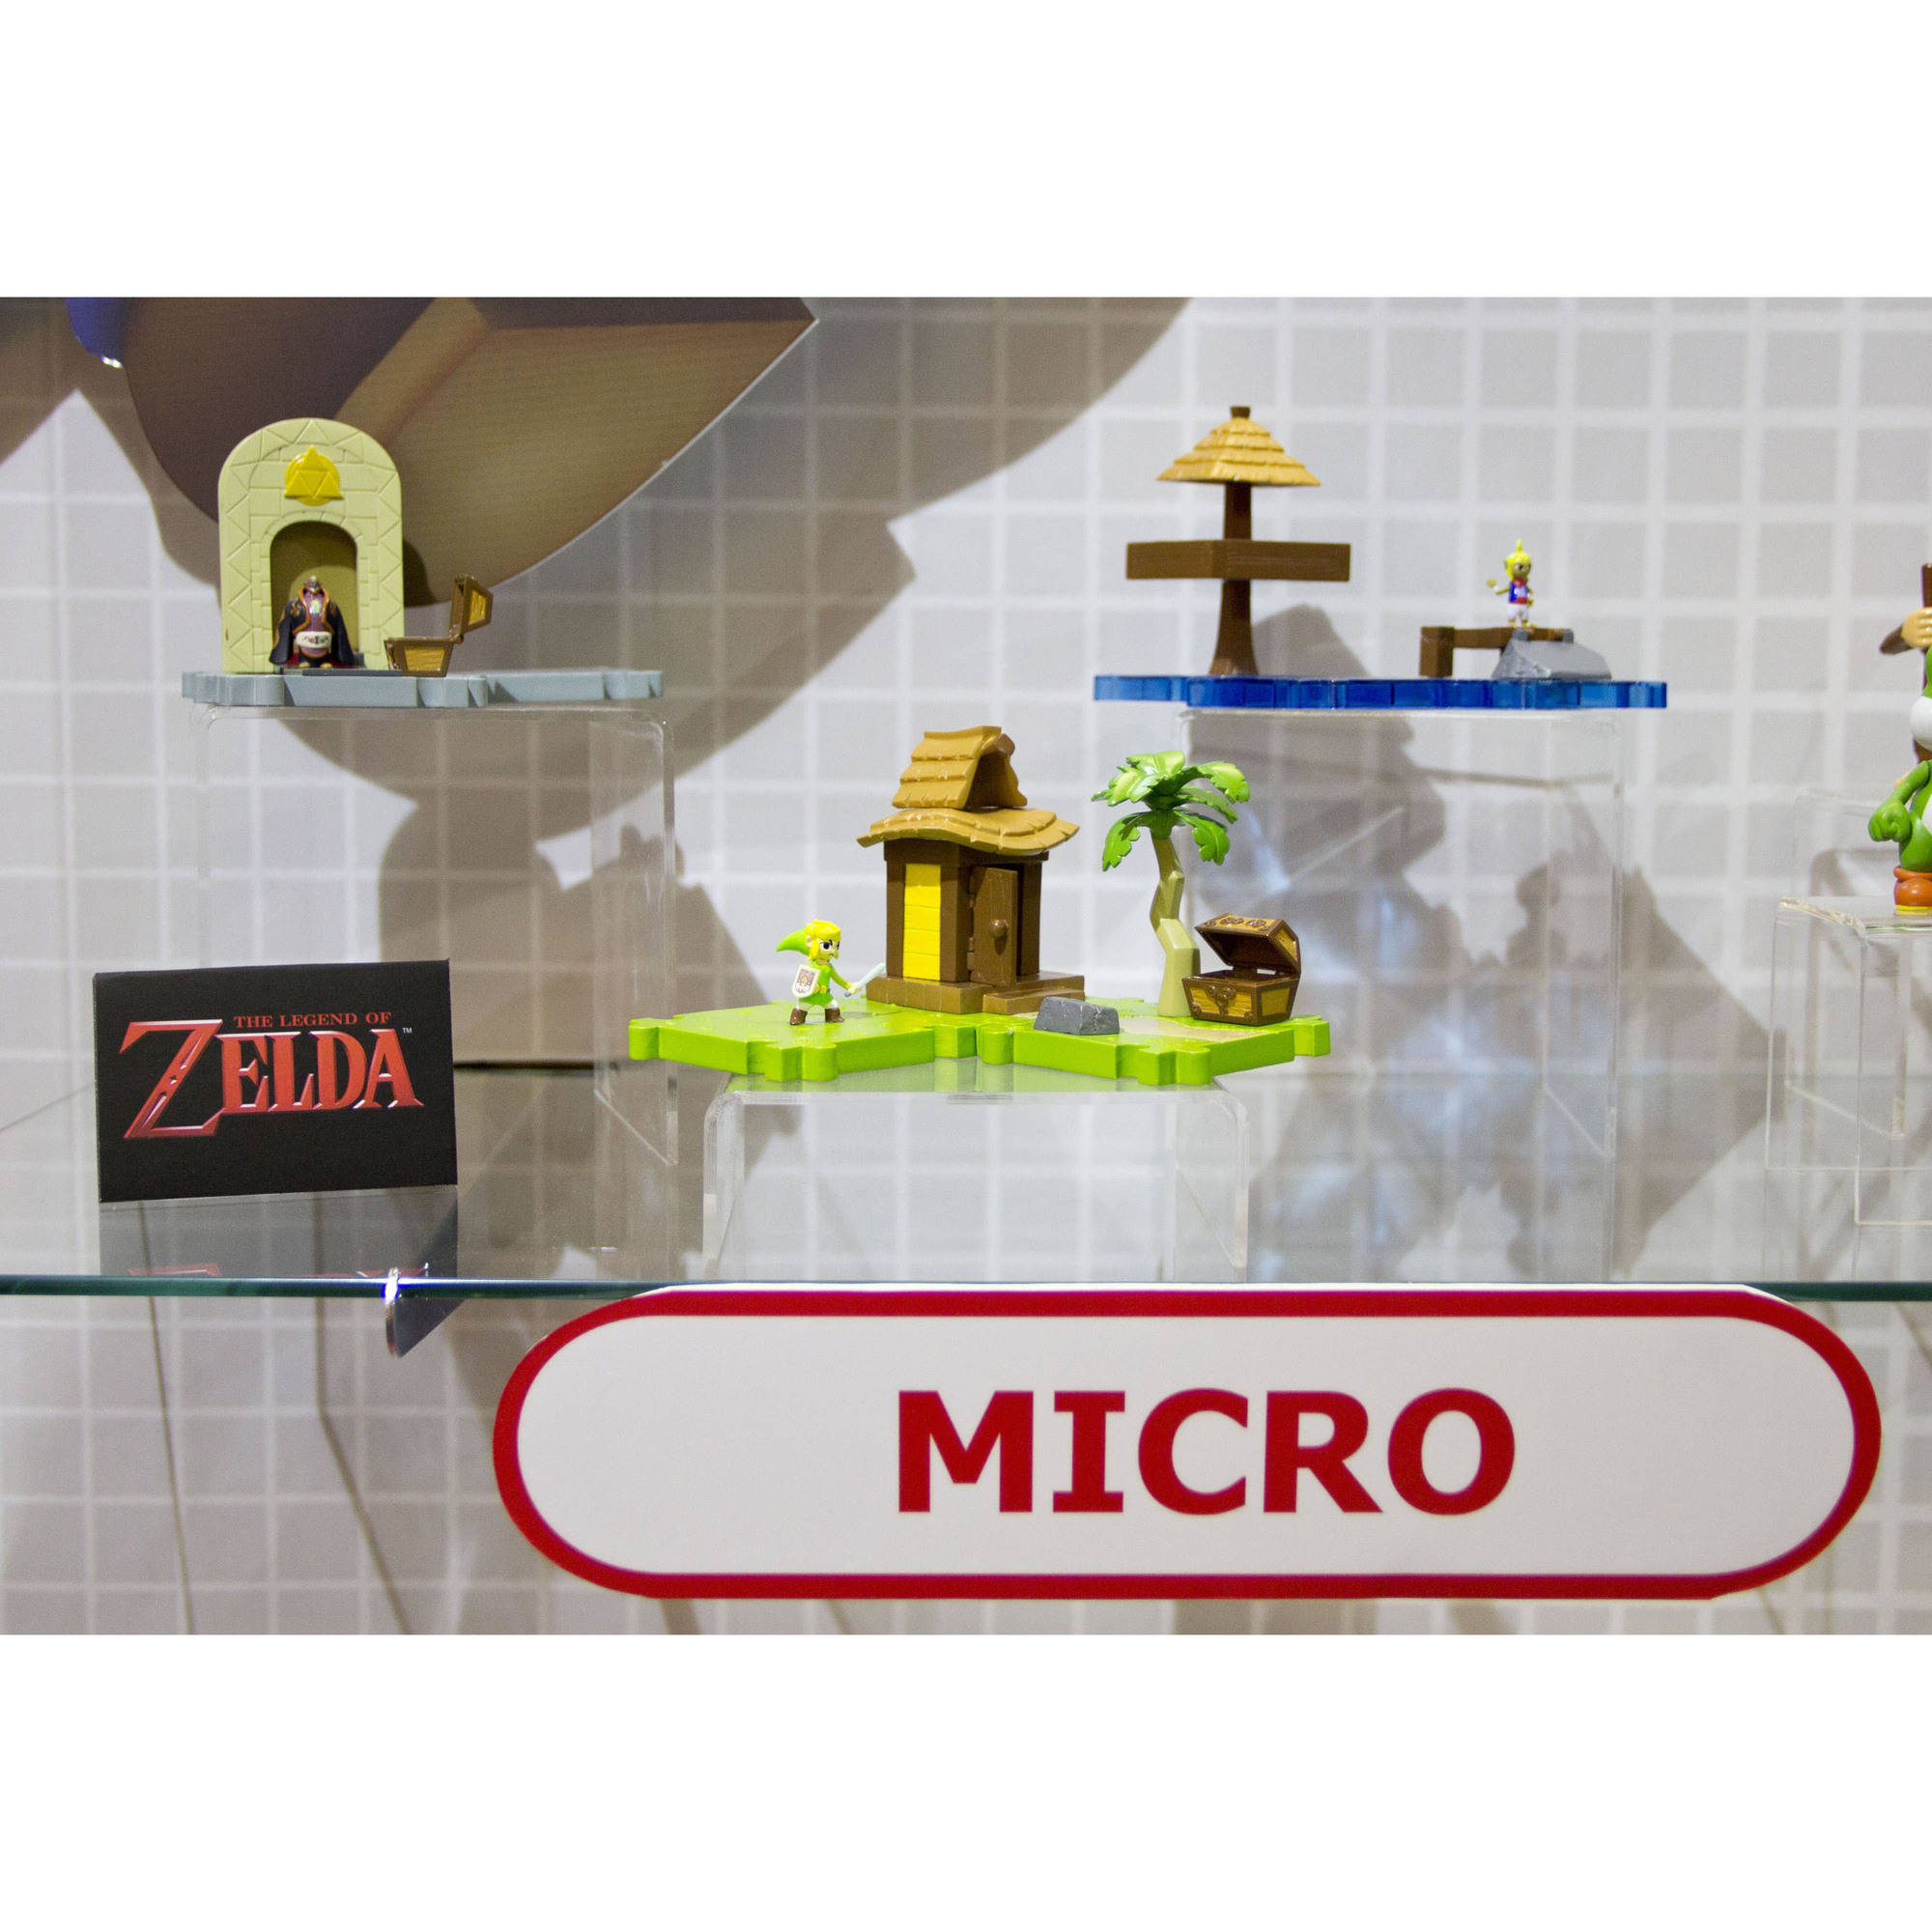 Micro Figure 3-Pack, Link Island/Village theme